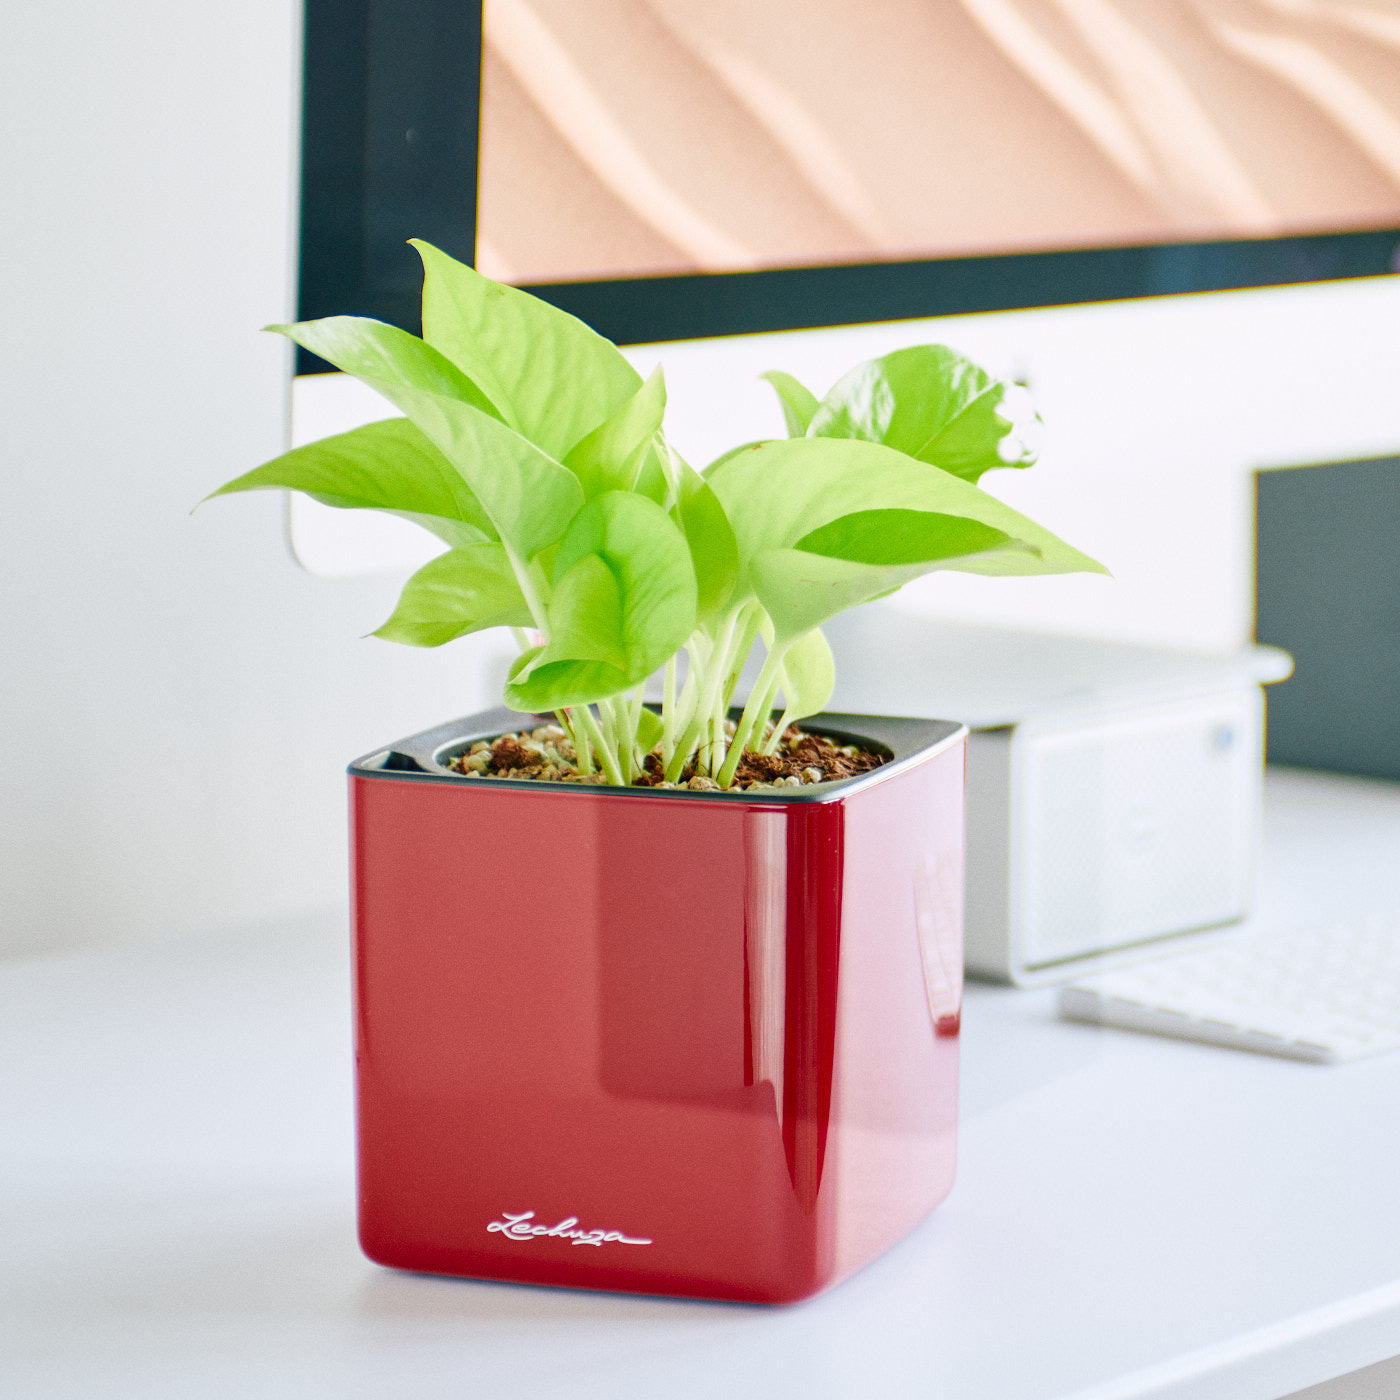 Pothos Neon In Lechuza Cube 14 Glossy Red Planter | My City Plants